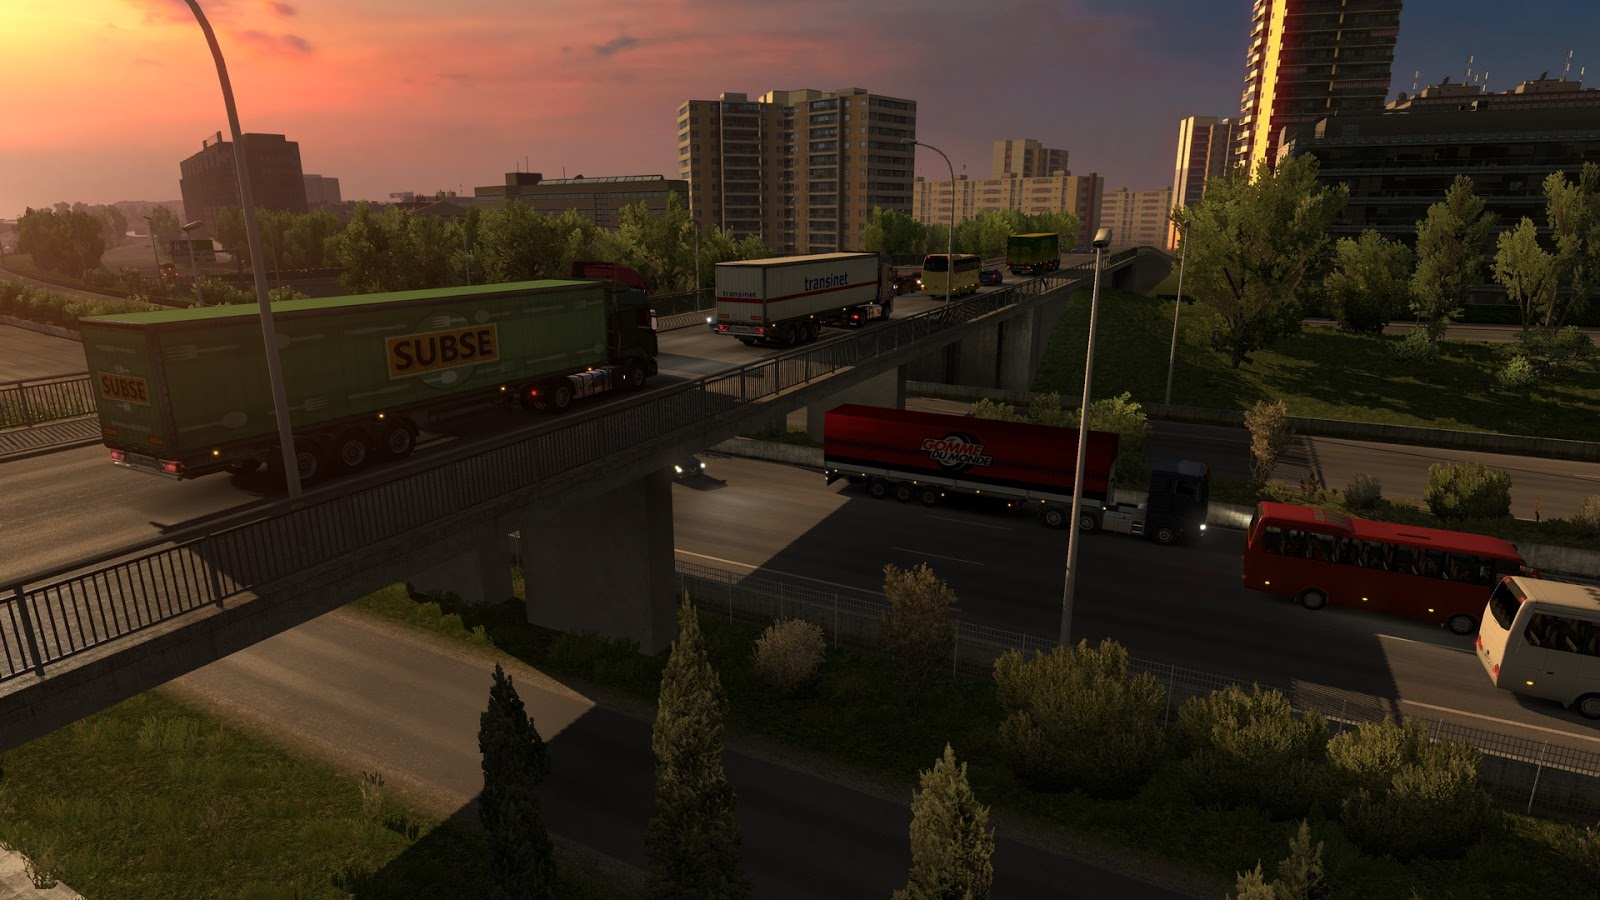 Ets2 1 30 download tpb | Euro truck simulator 1 30 2 2 with